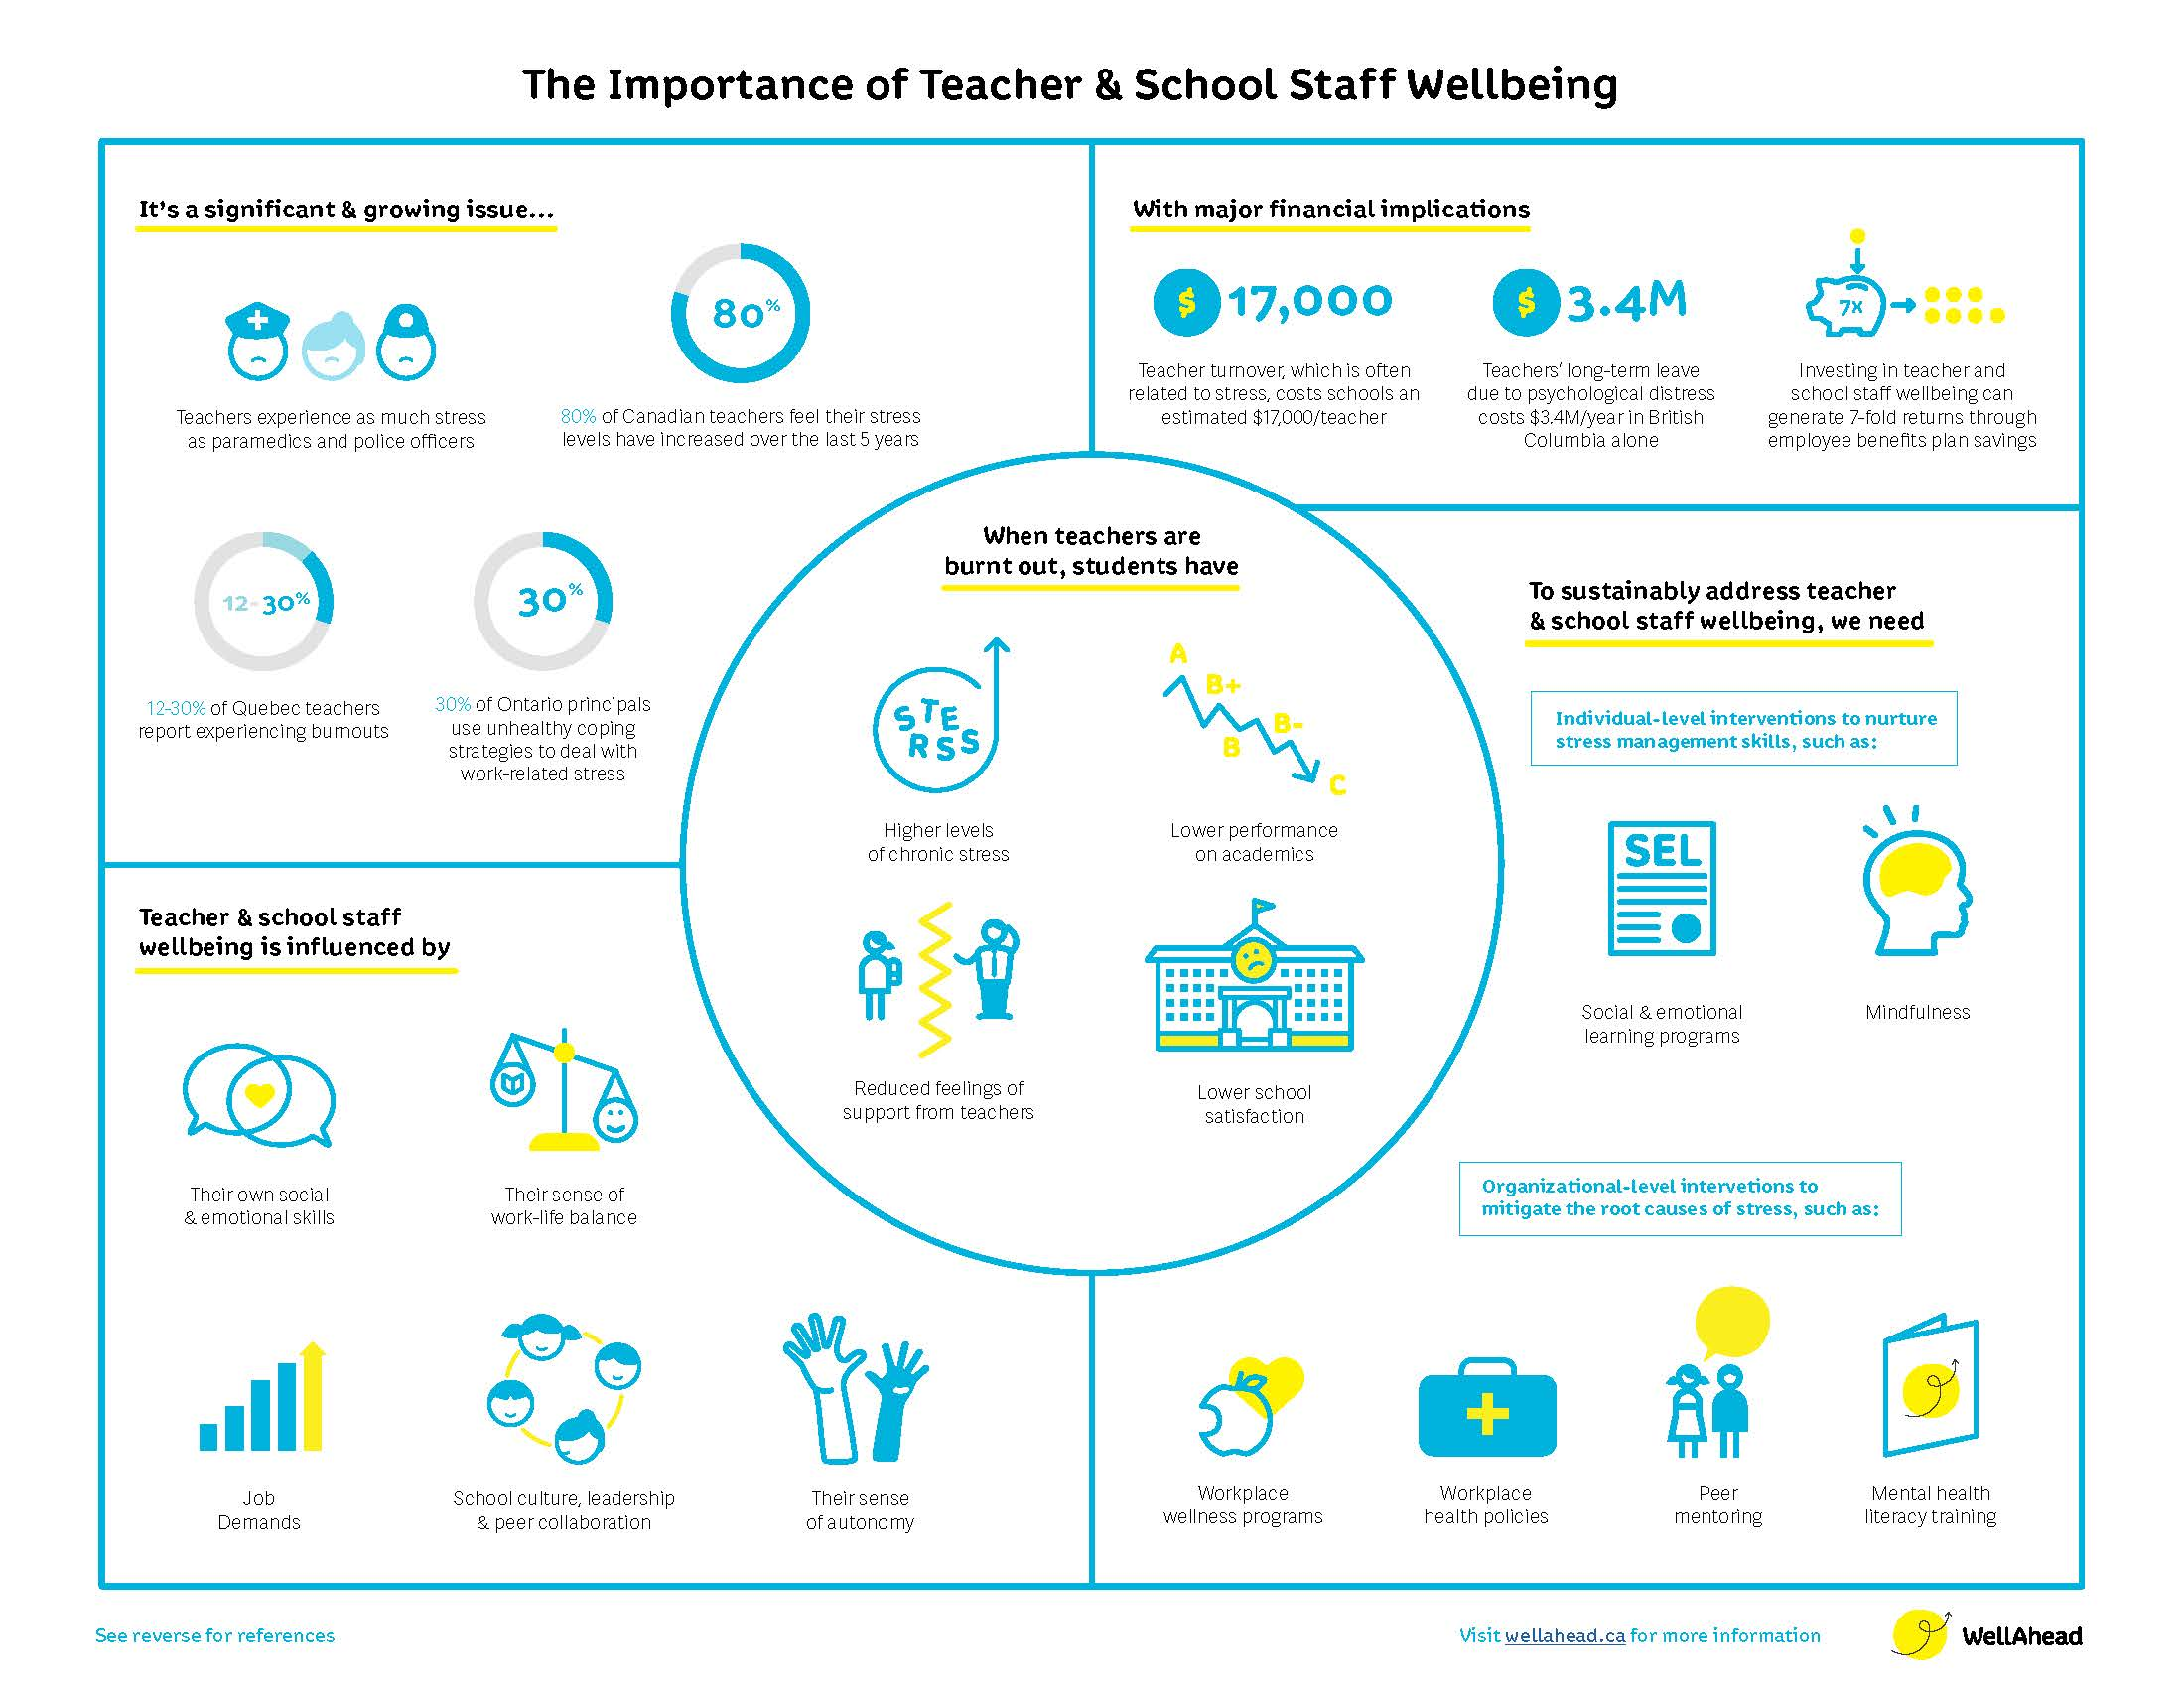 Infographic on the importance of Teacher & School Staff Wellbeing